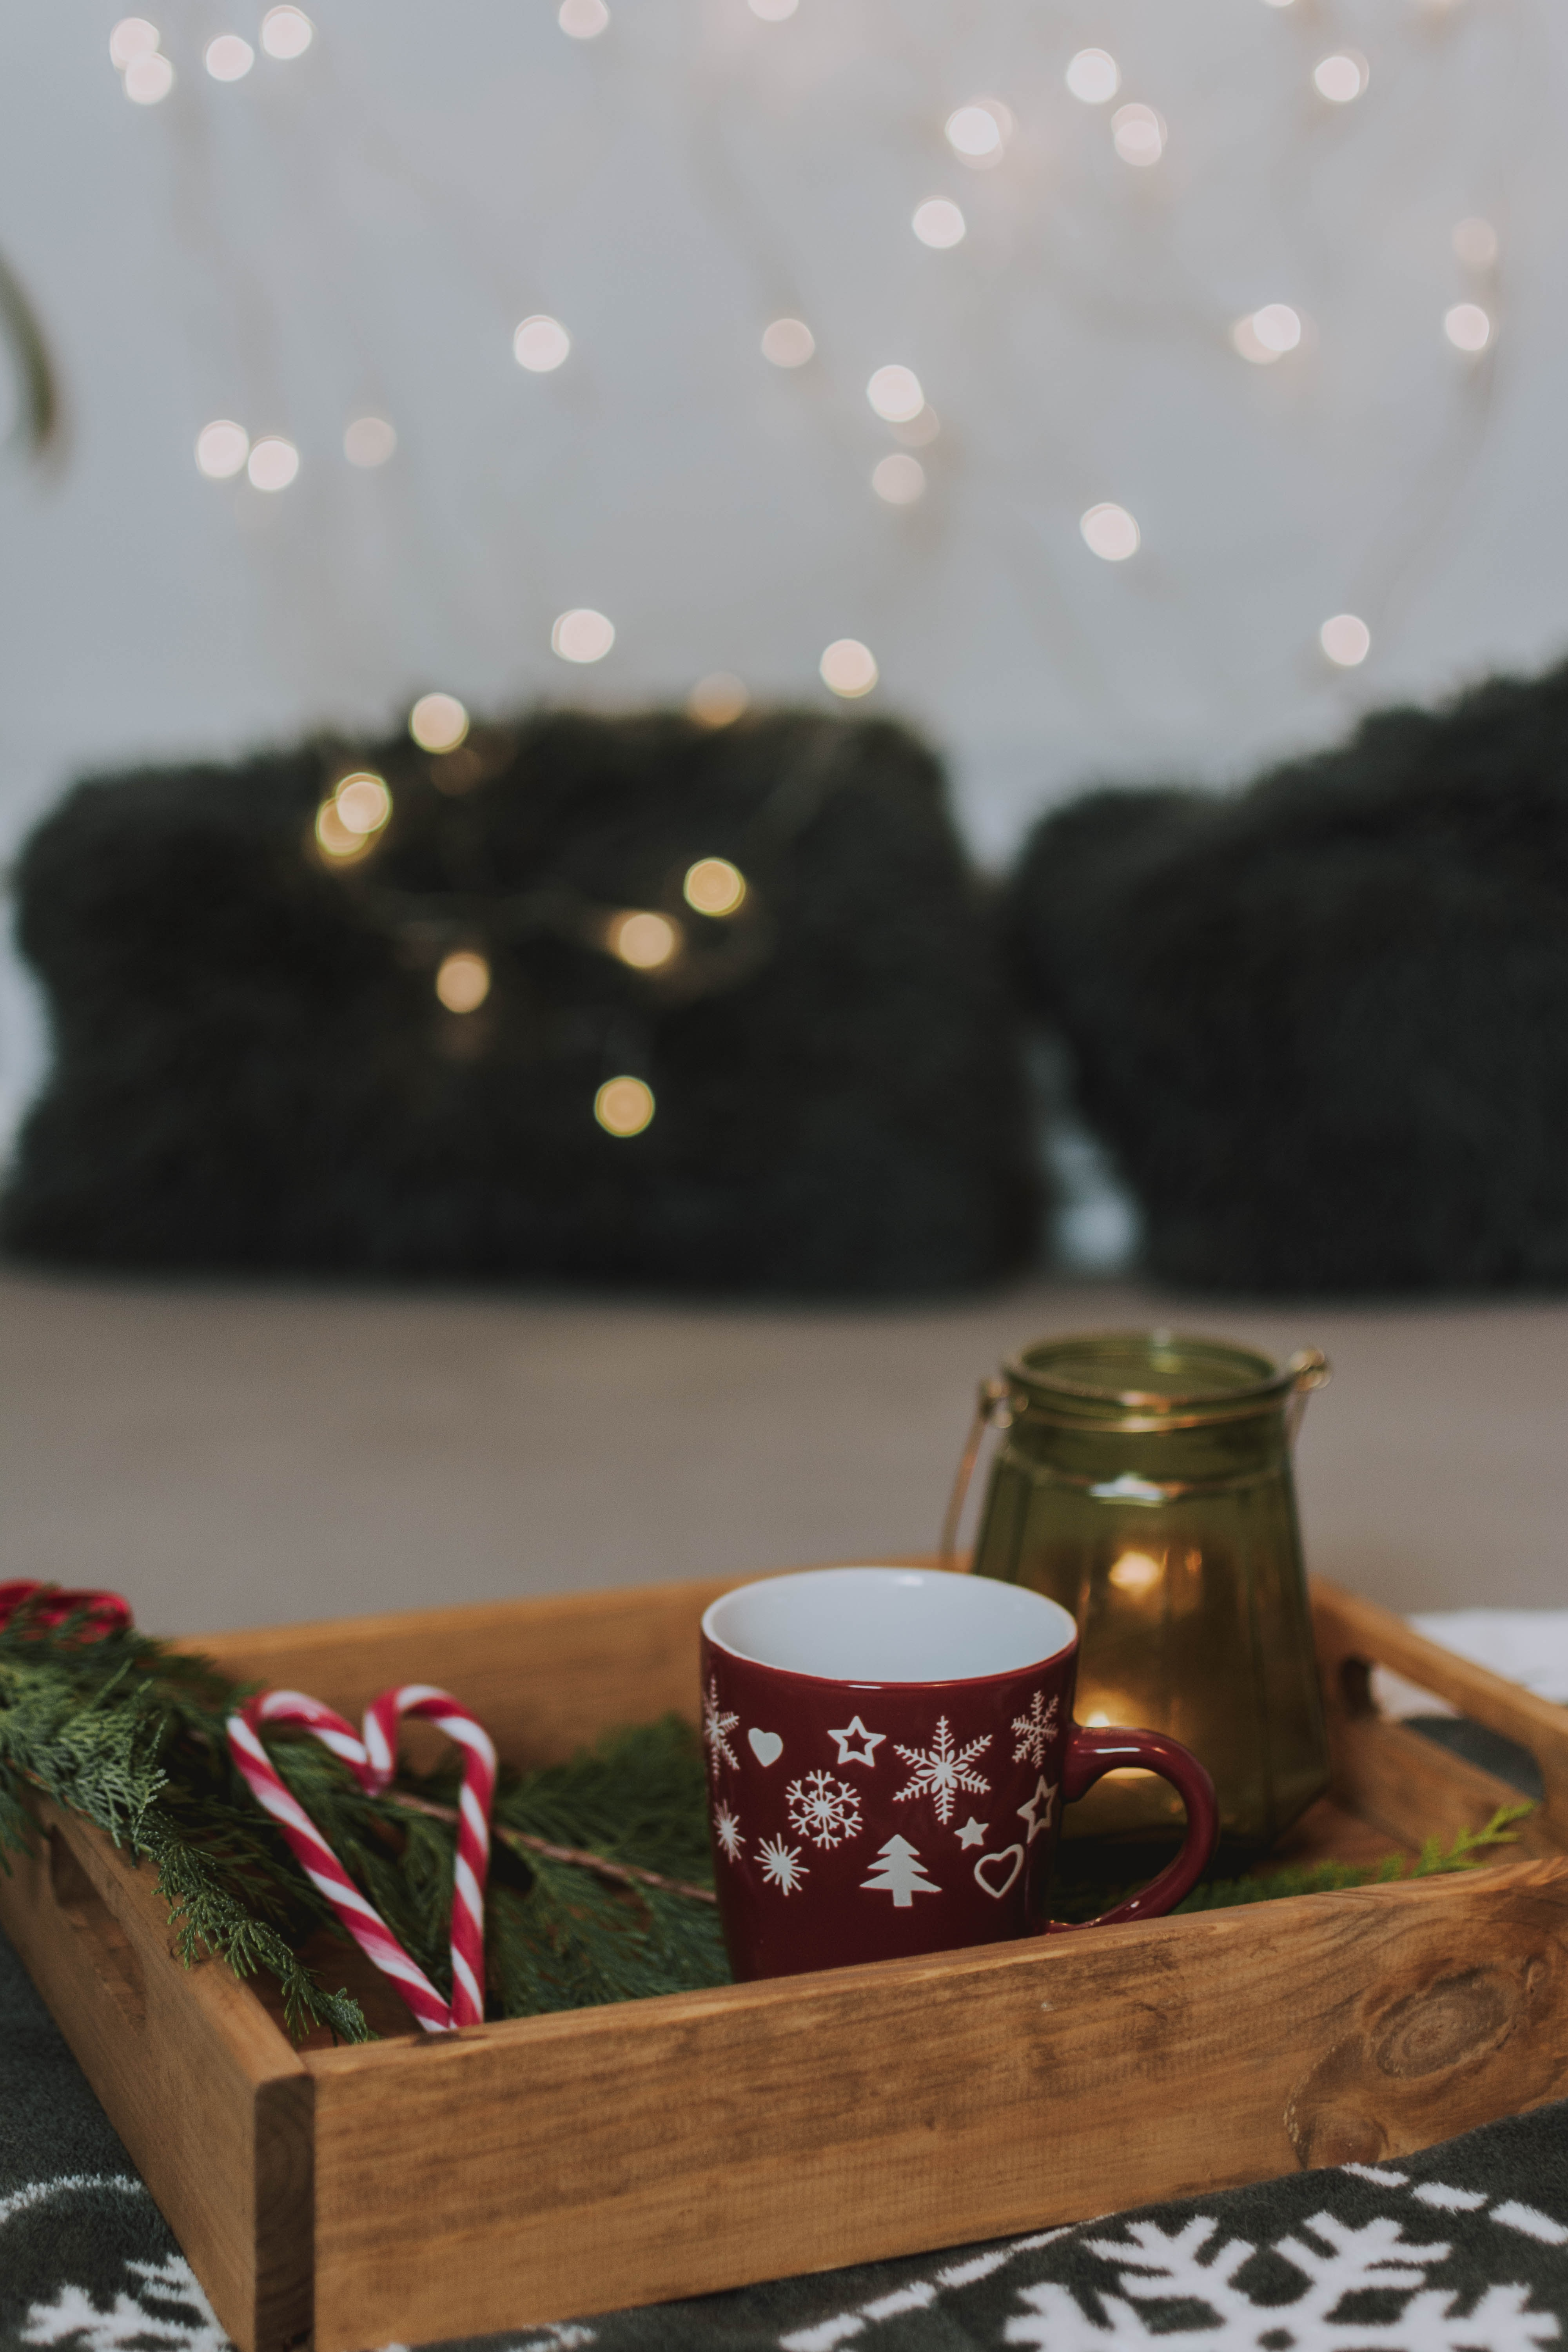 149606 download wallpaper Holidays, Box, Cup, Mug, Christmas Tree, New Year, Christmas, Candies screensavers and pictures for free